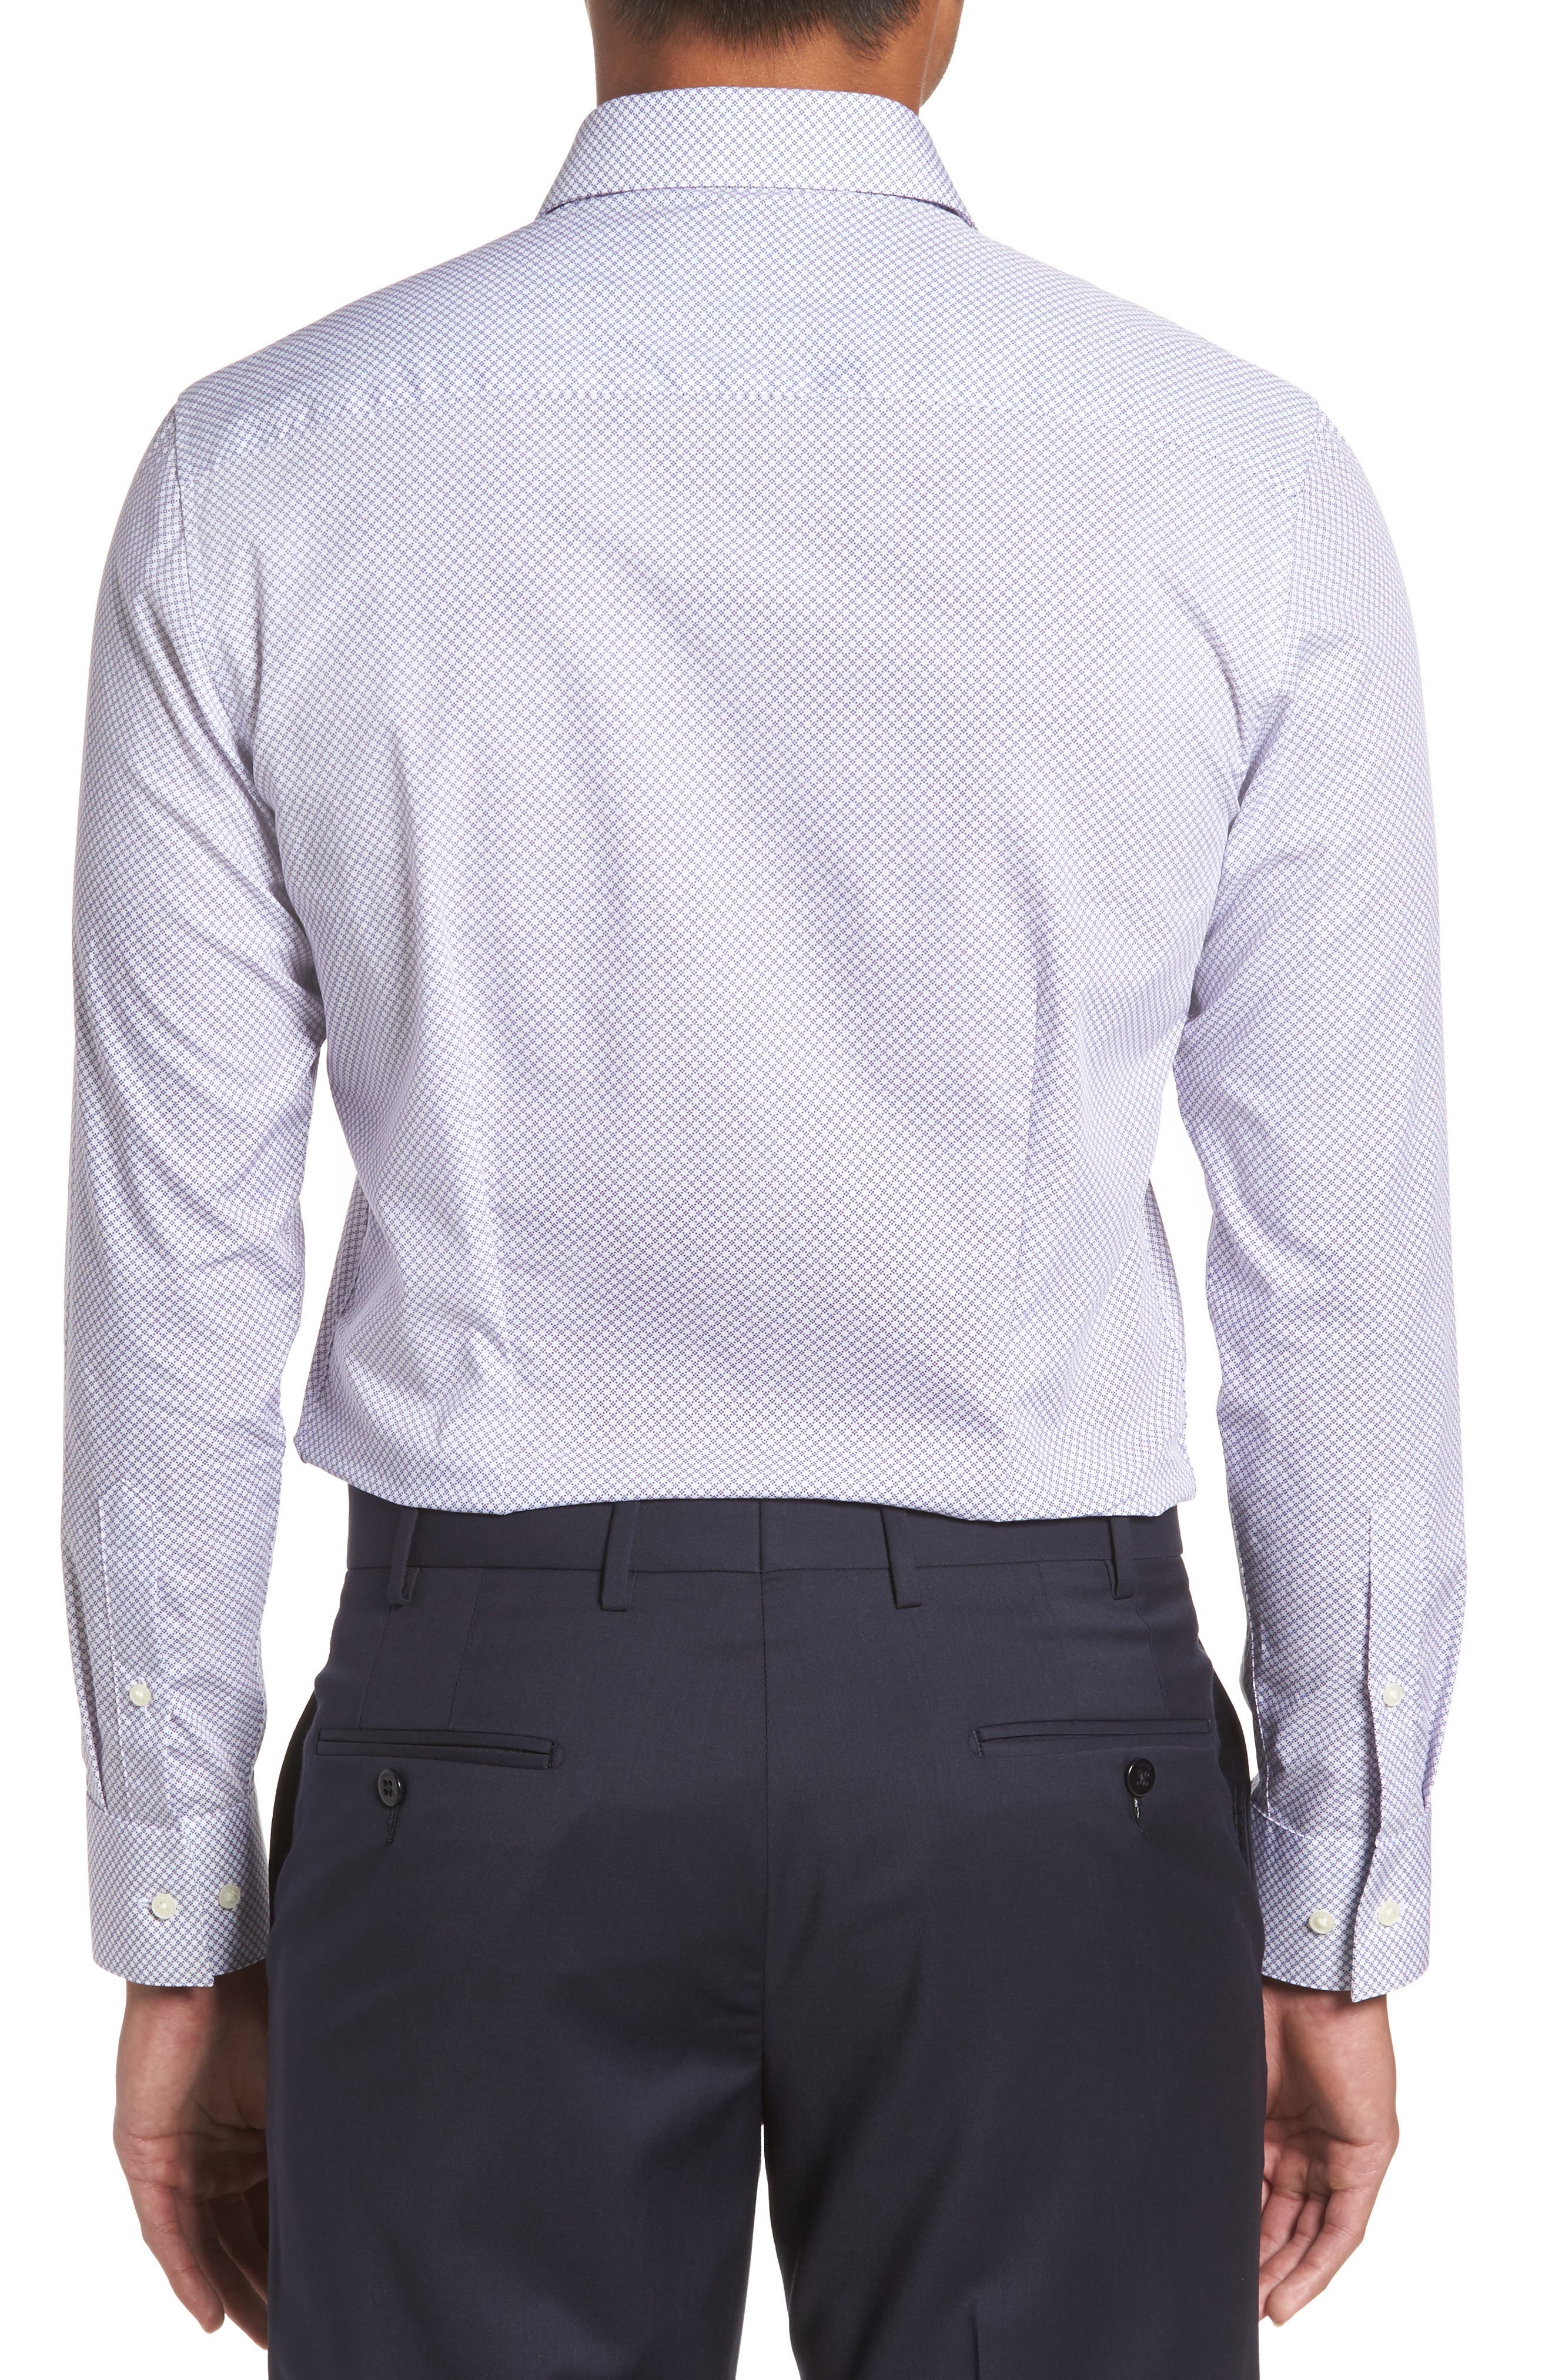 Endurance Sterling Trim Fit Dress Shirt,                             Alternate thumbnail 4, color,